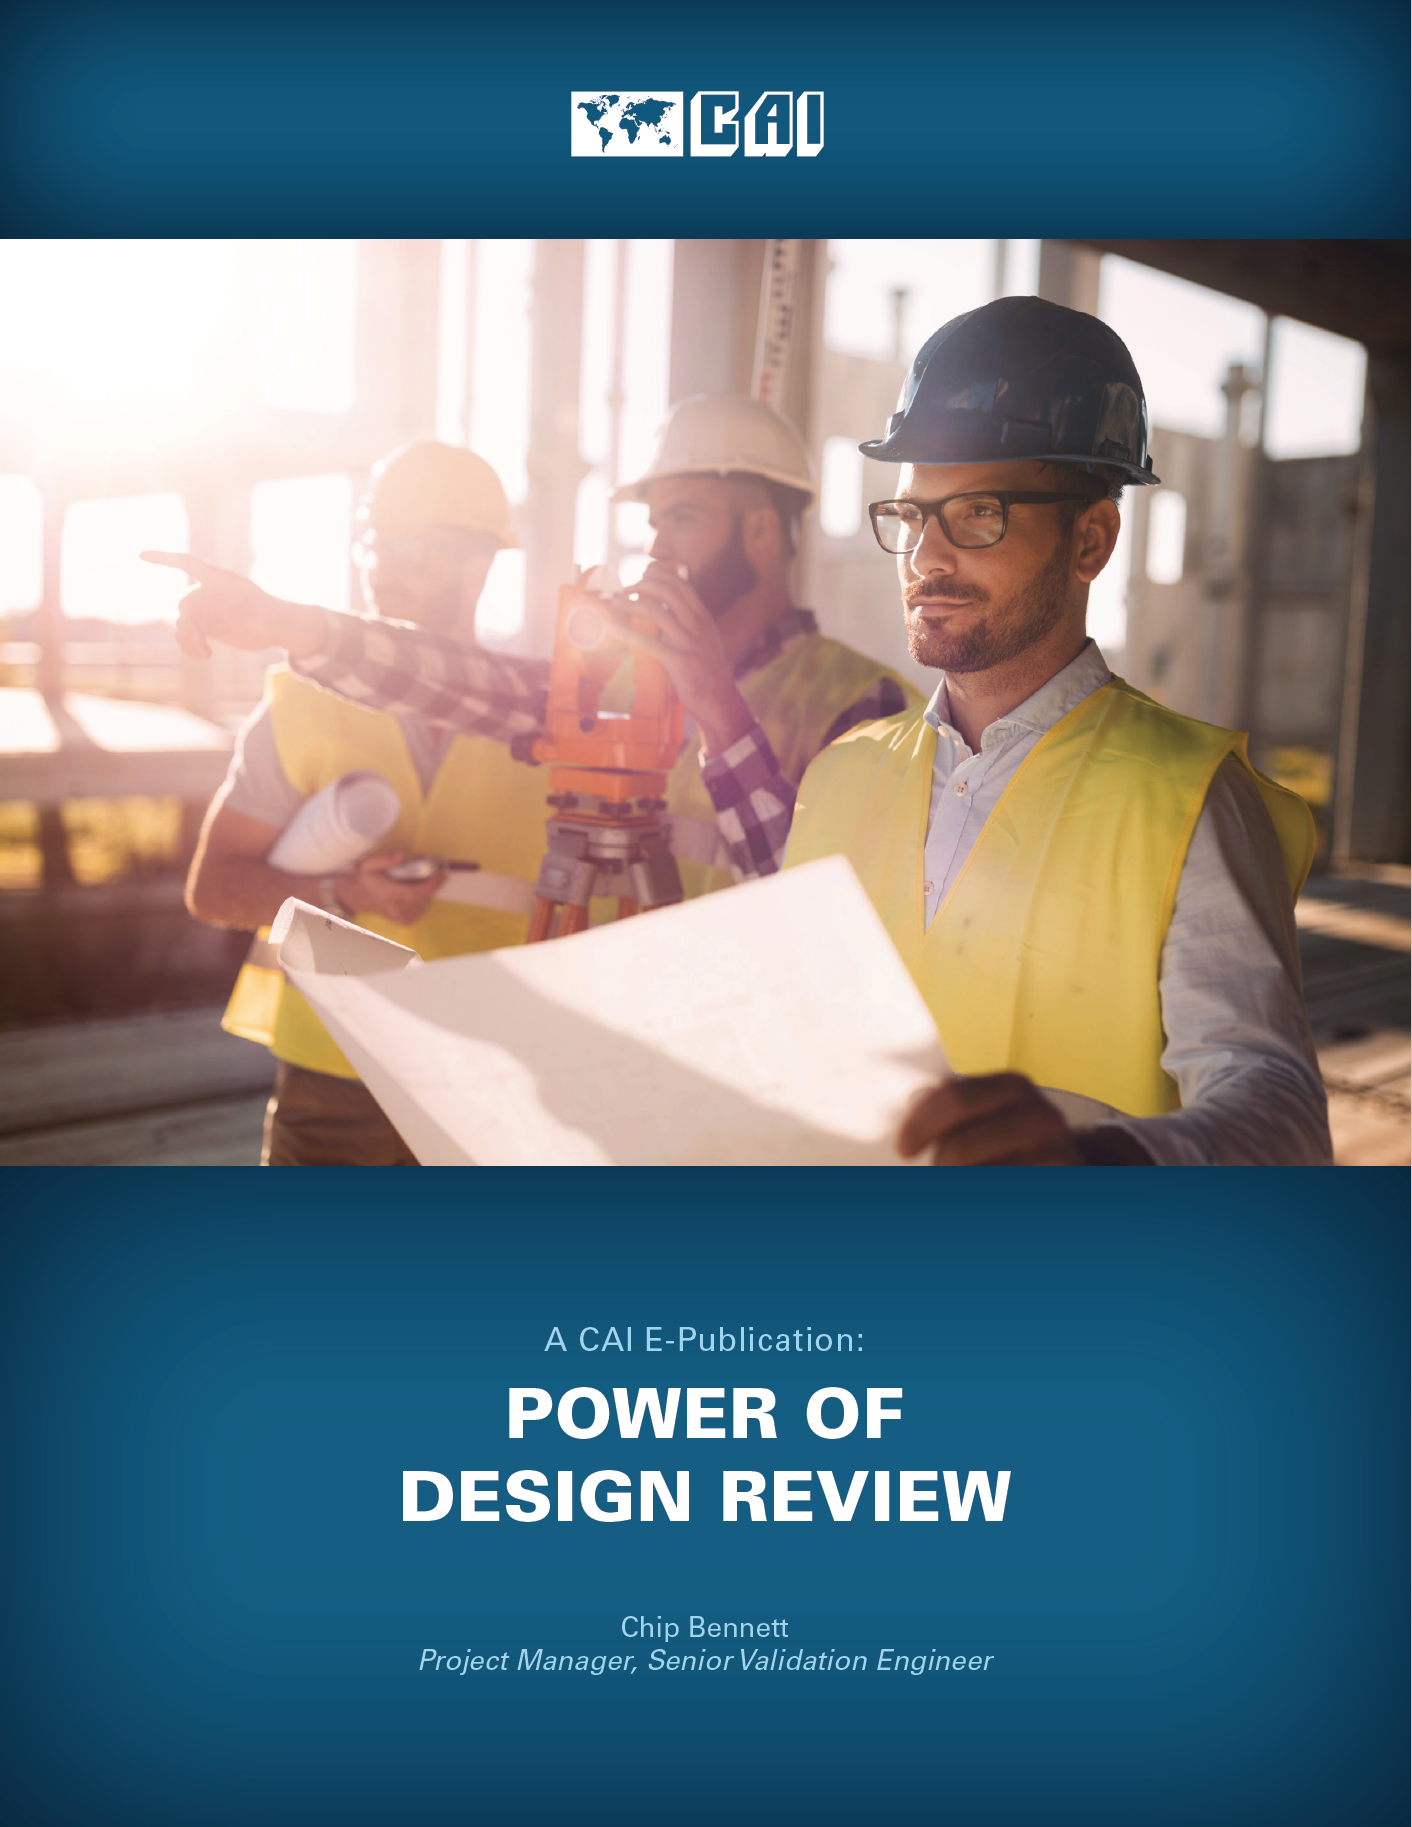 Power of Design Review